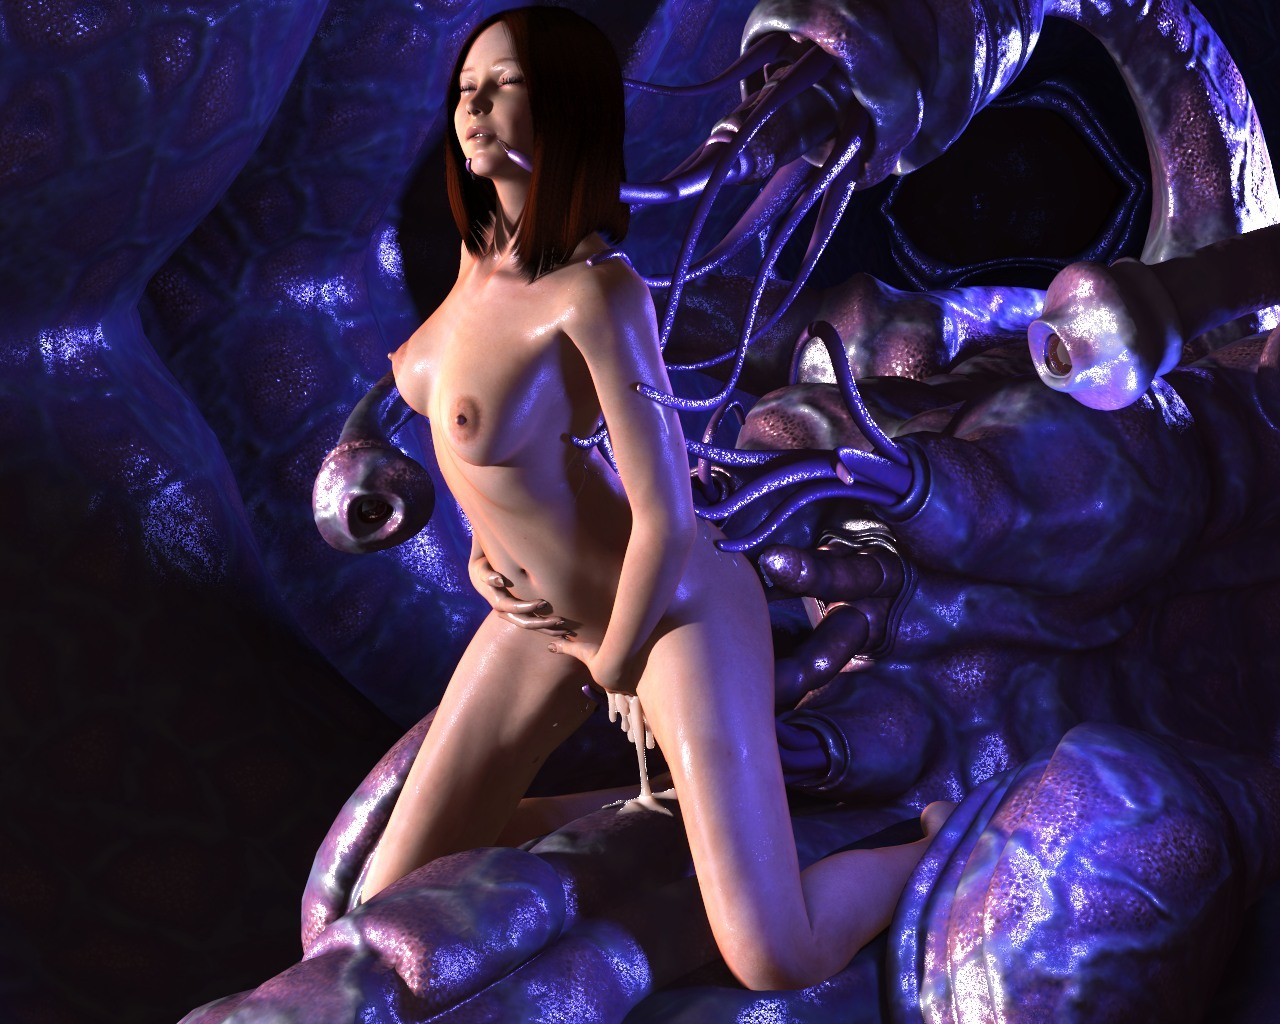 3d cg erotic monster wallpaper adult film